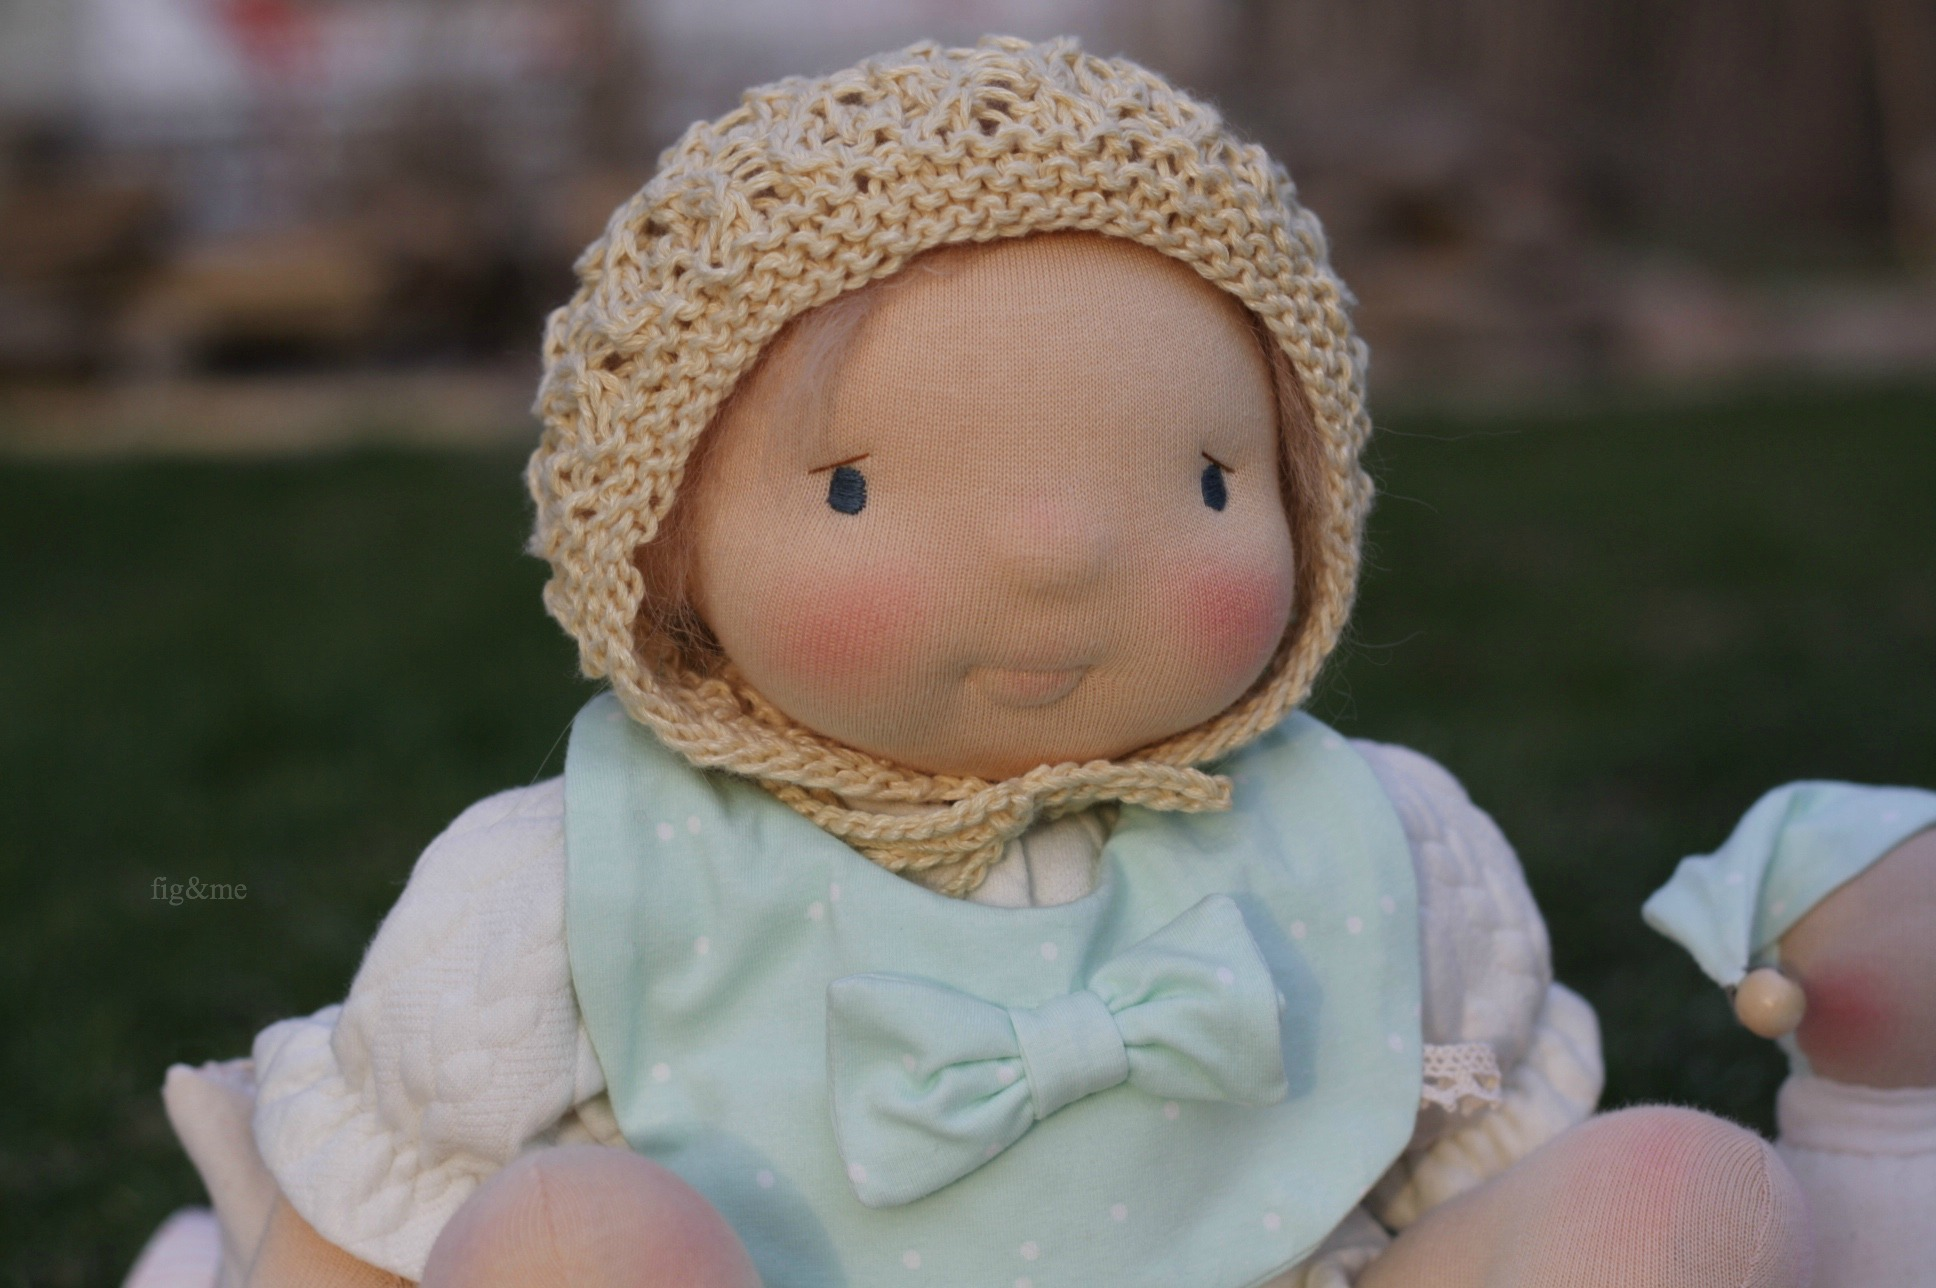 Robina wears her pretty lace bonnet and bow bib, by Fig and me.